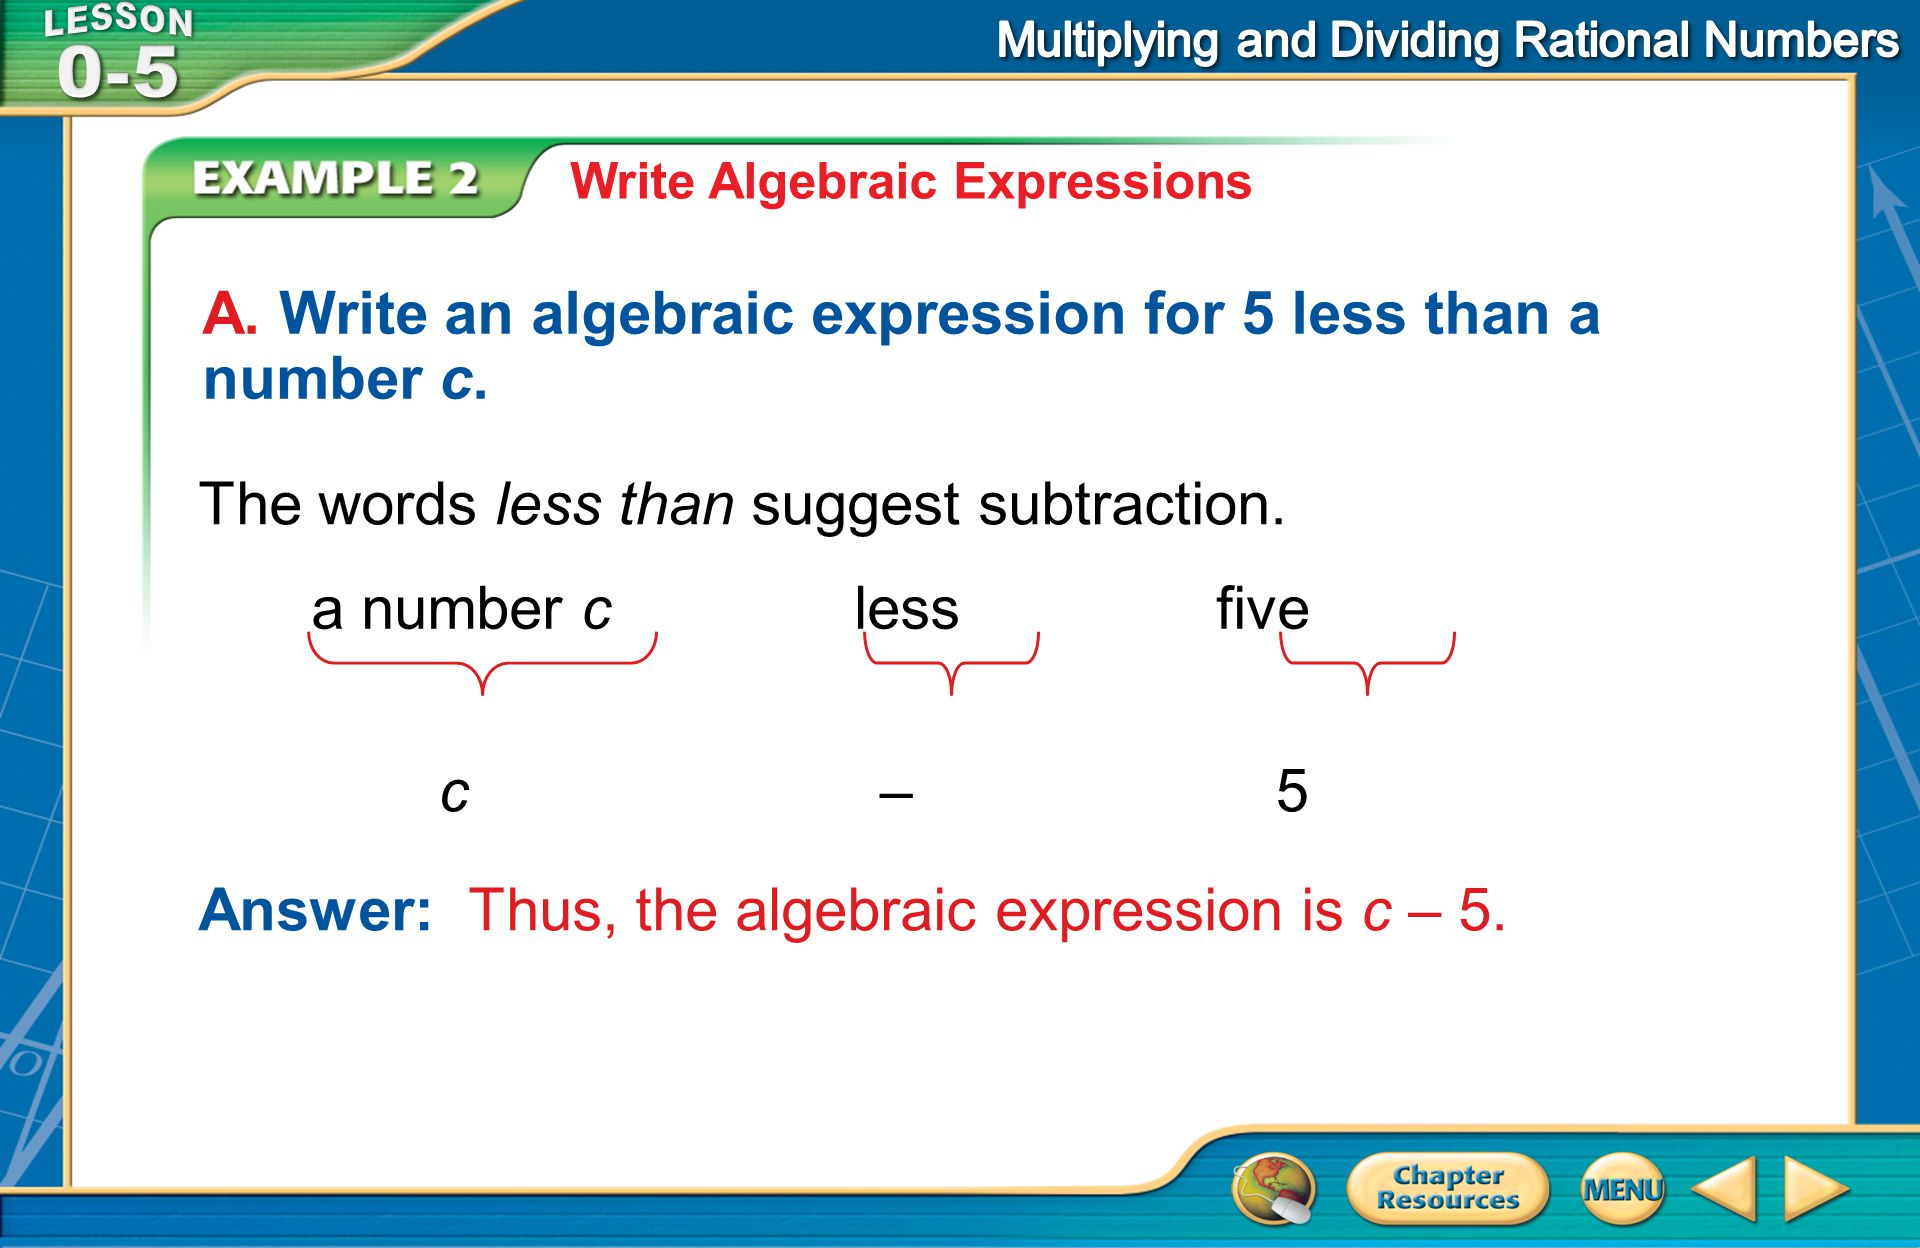 A. Write an algebraic expression for 5 less than a number c.